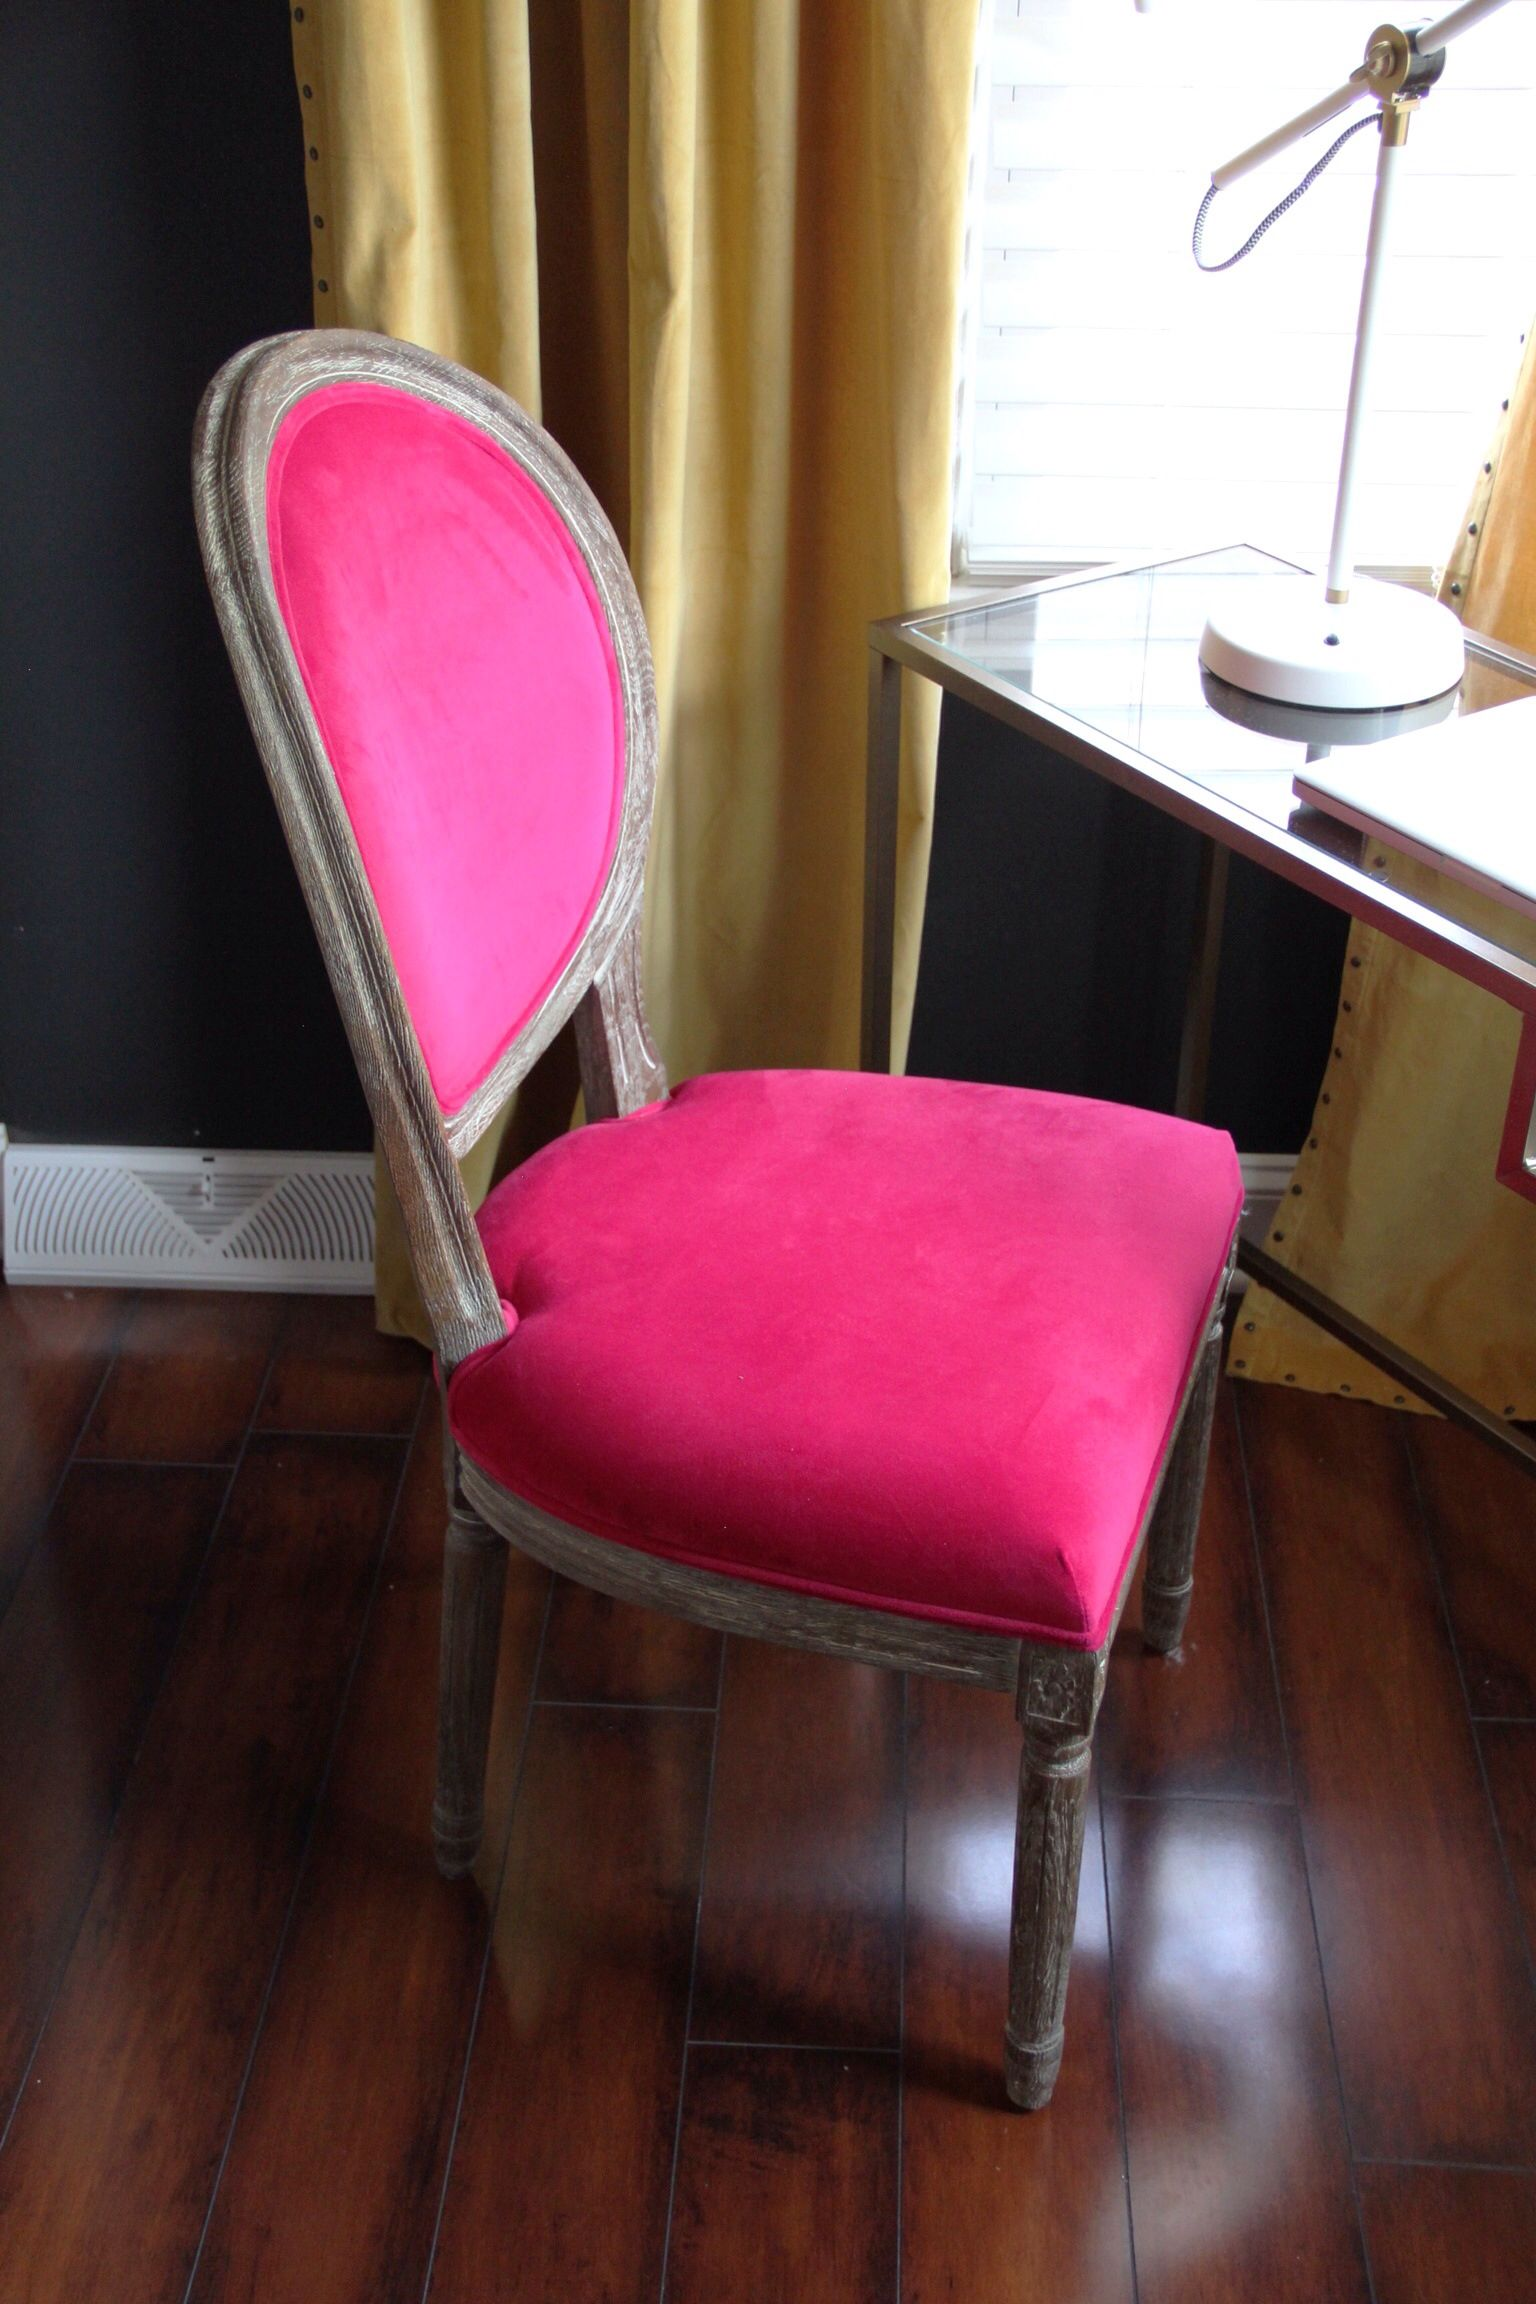 Pink velvet dining chair from Cost Plus World Market. I am